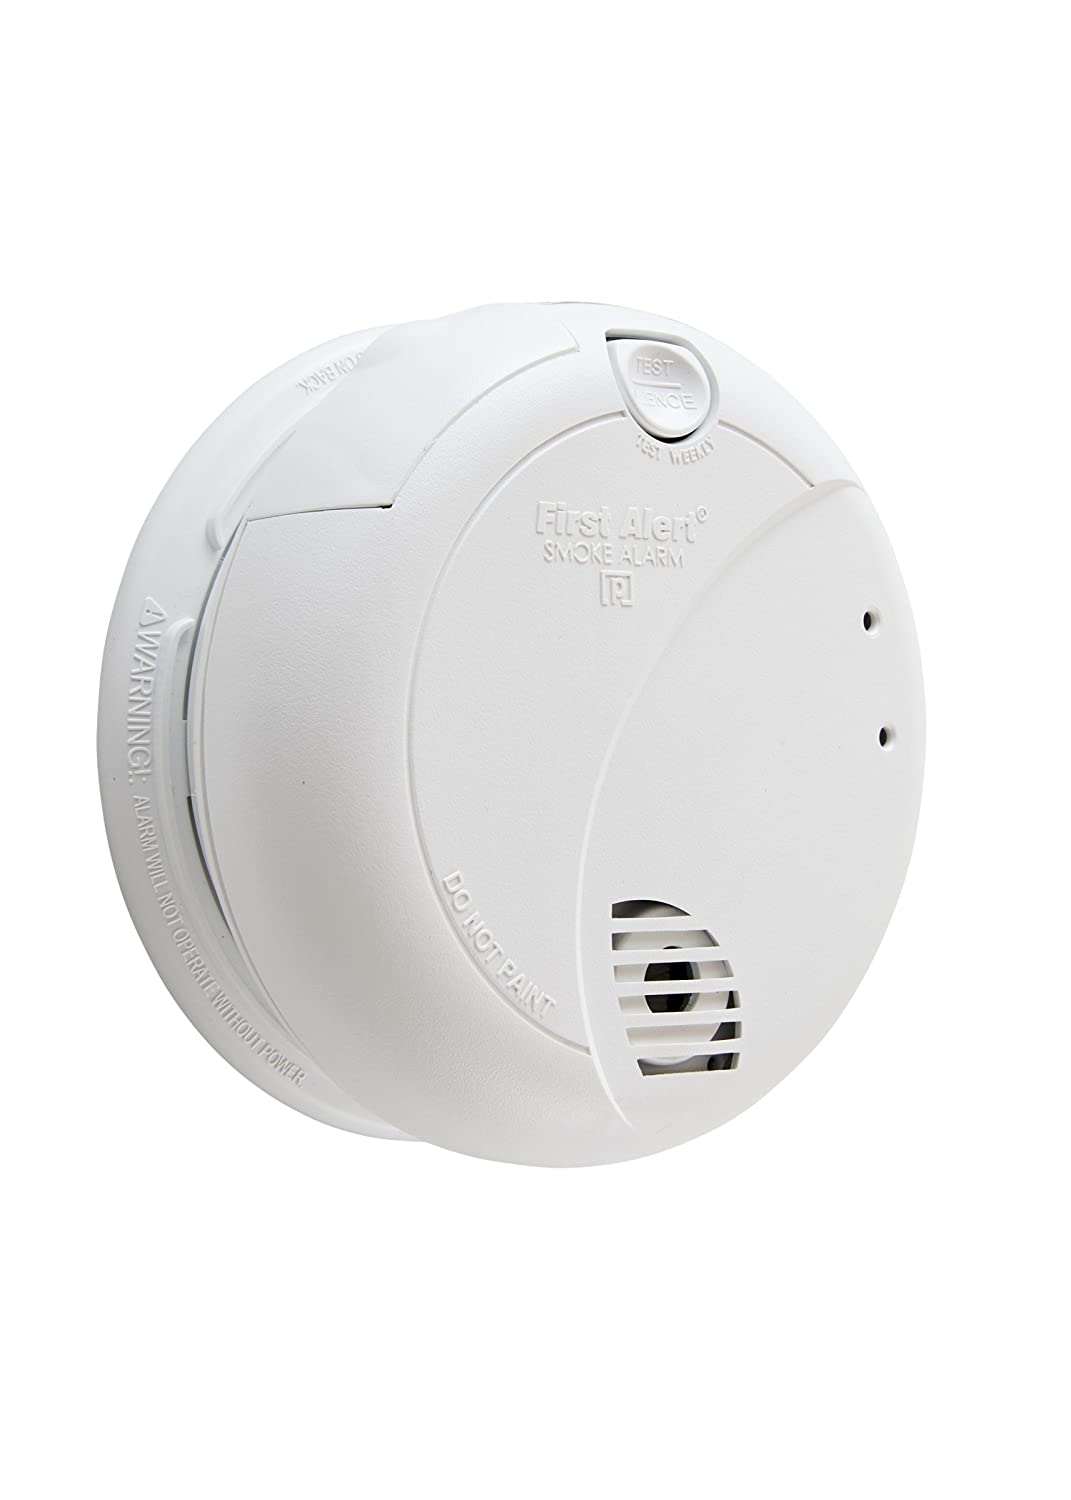 First Alert BRK 7010B Hardwire Smoke Alarm with Photoelectric Sensor and Battery Backup